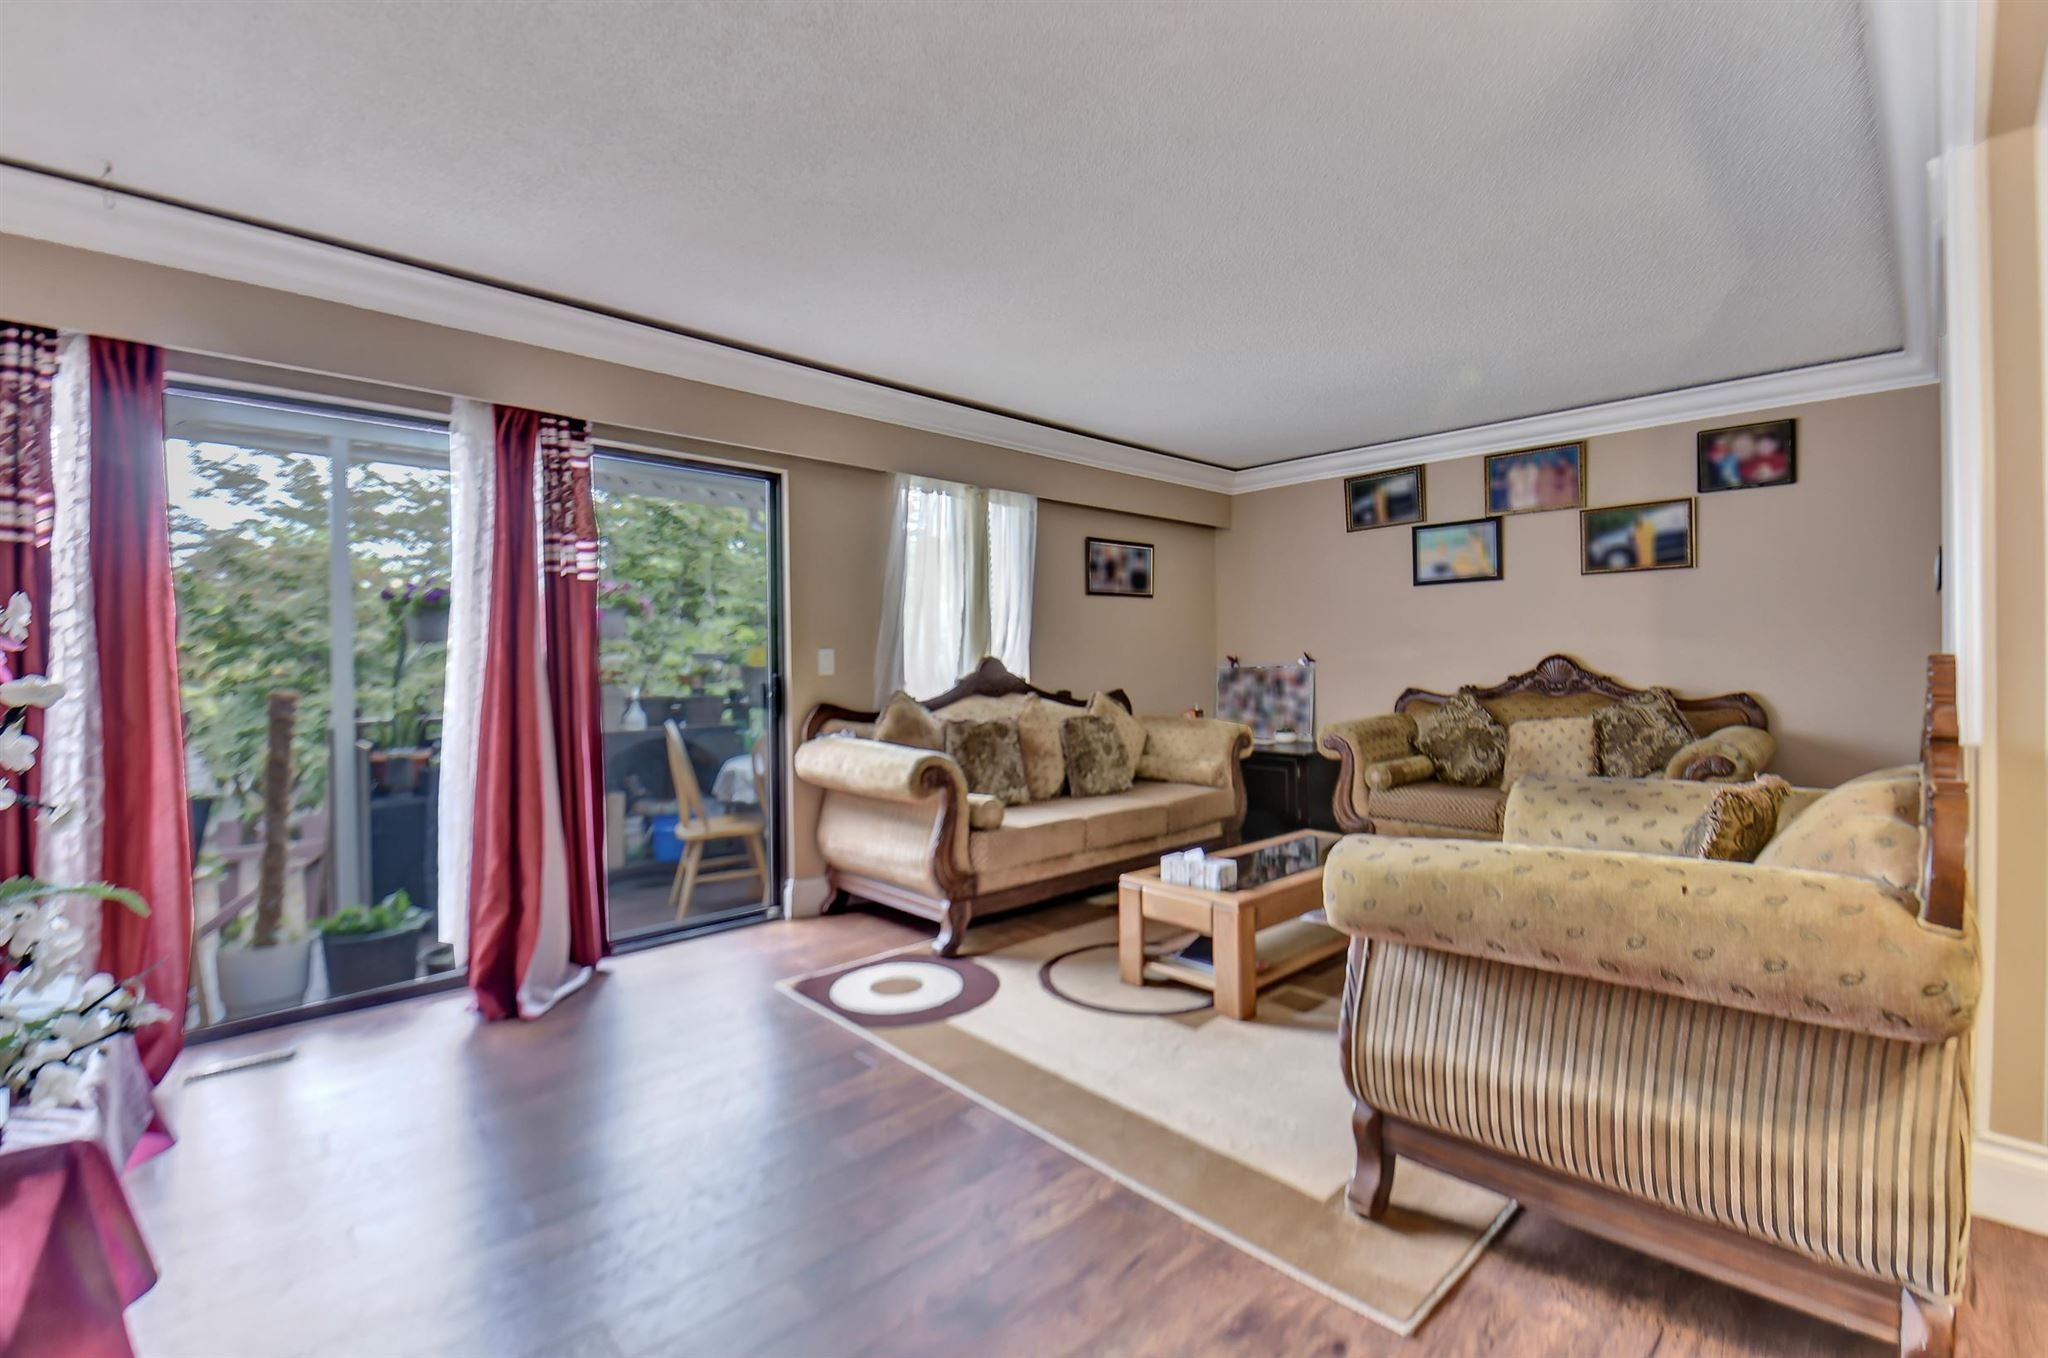 31 12045 93A AVENUE - Queen Mary Park Surrey Townhouse for sale, 4 Bedrooms (R2603608) - #8